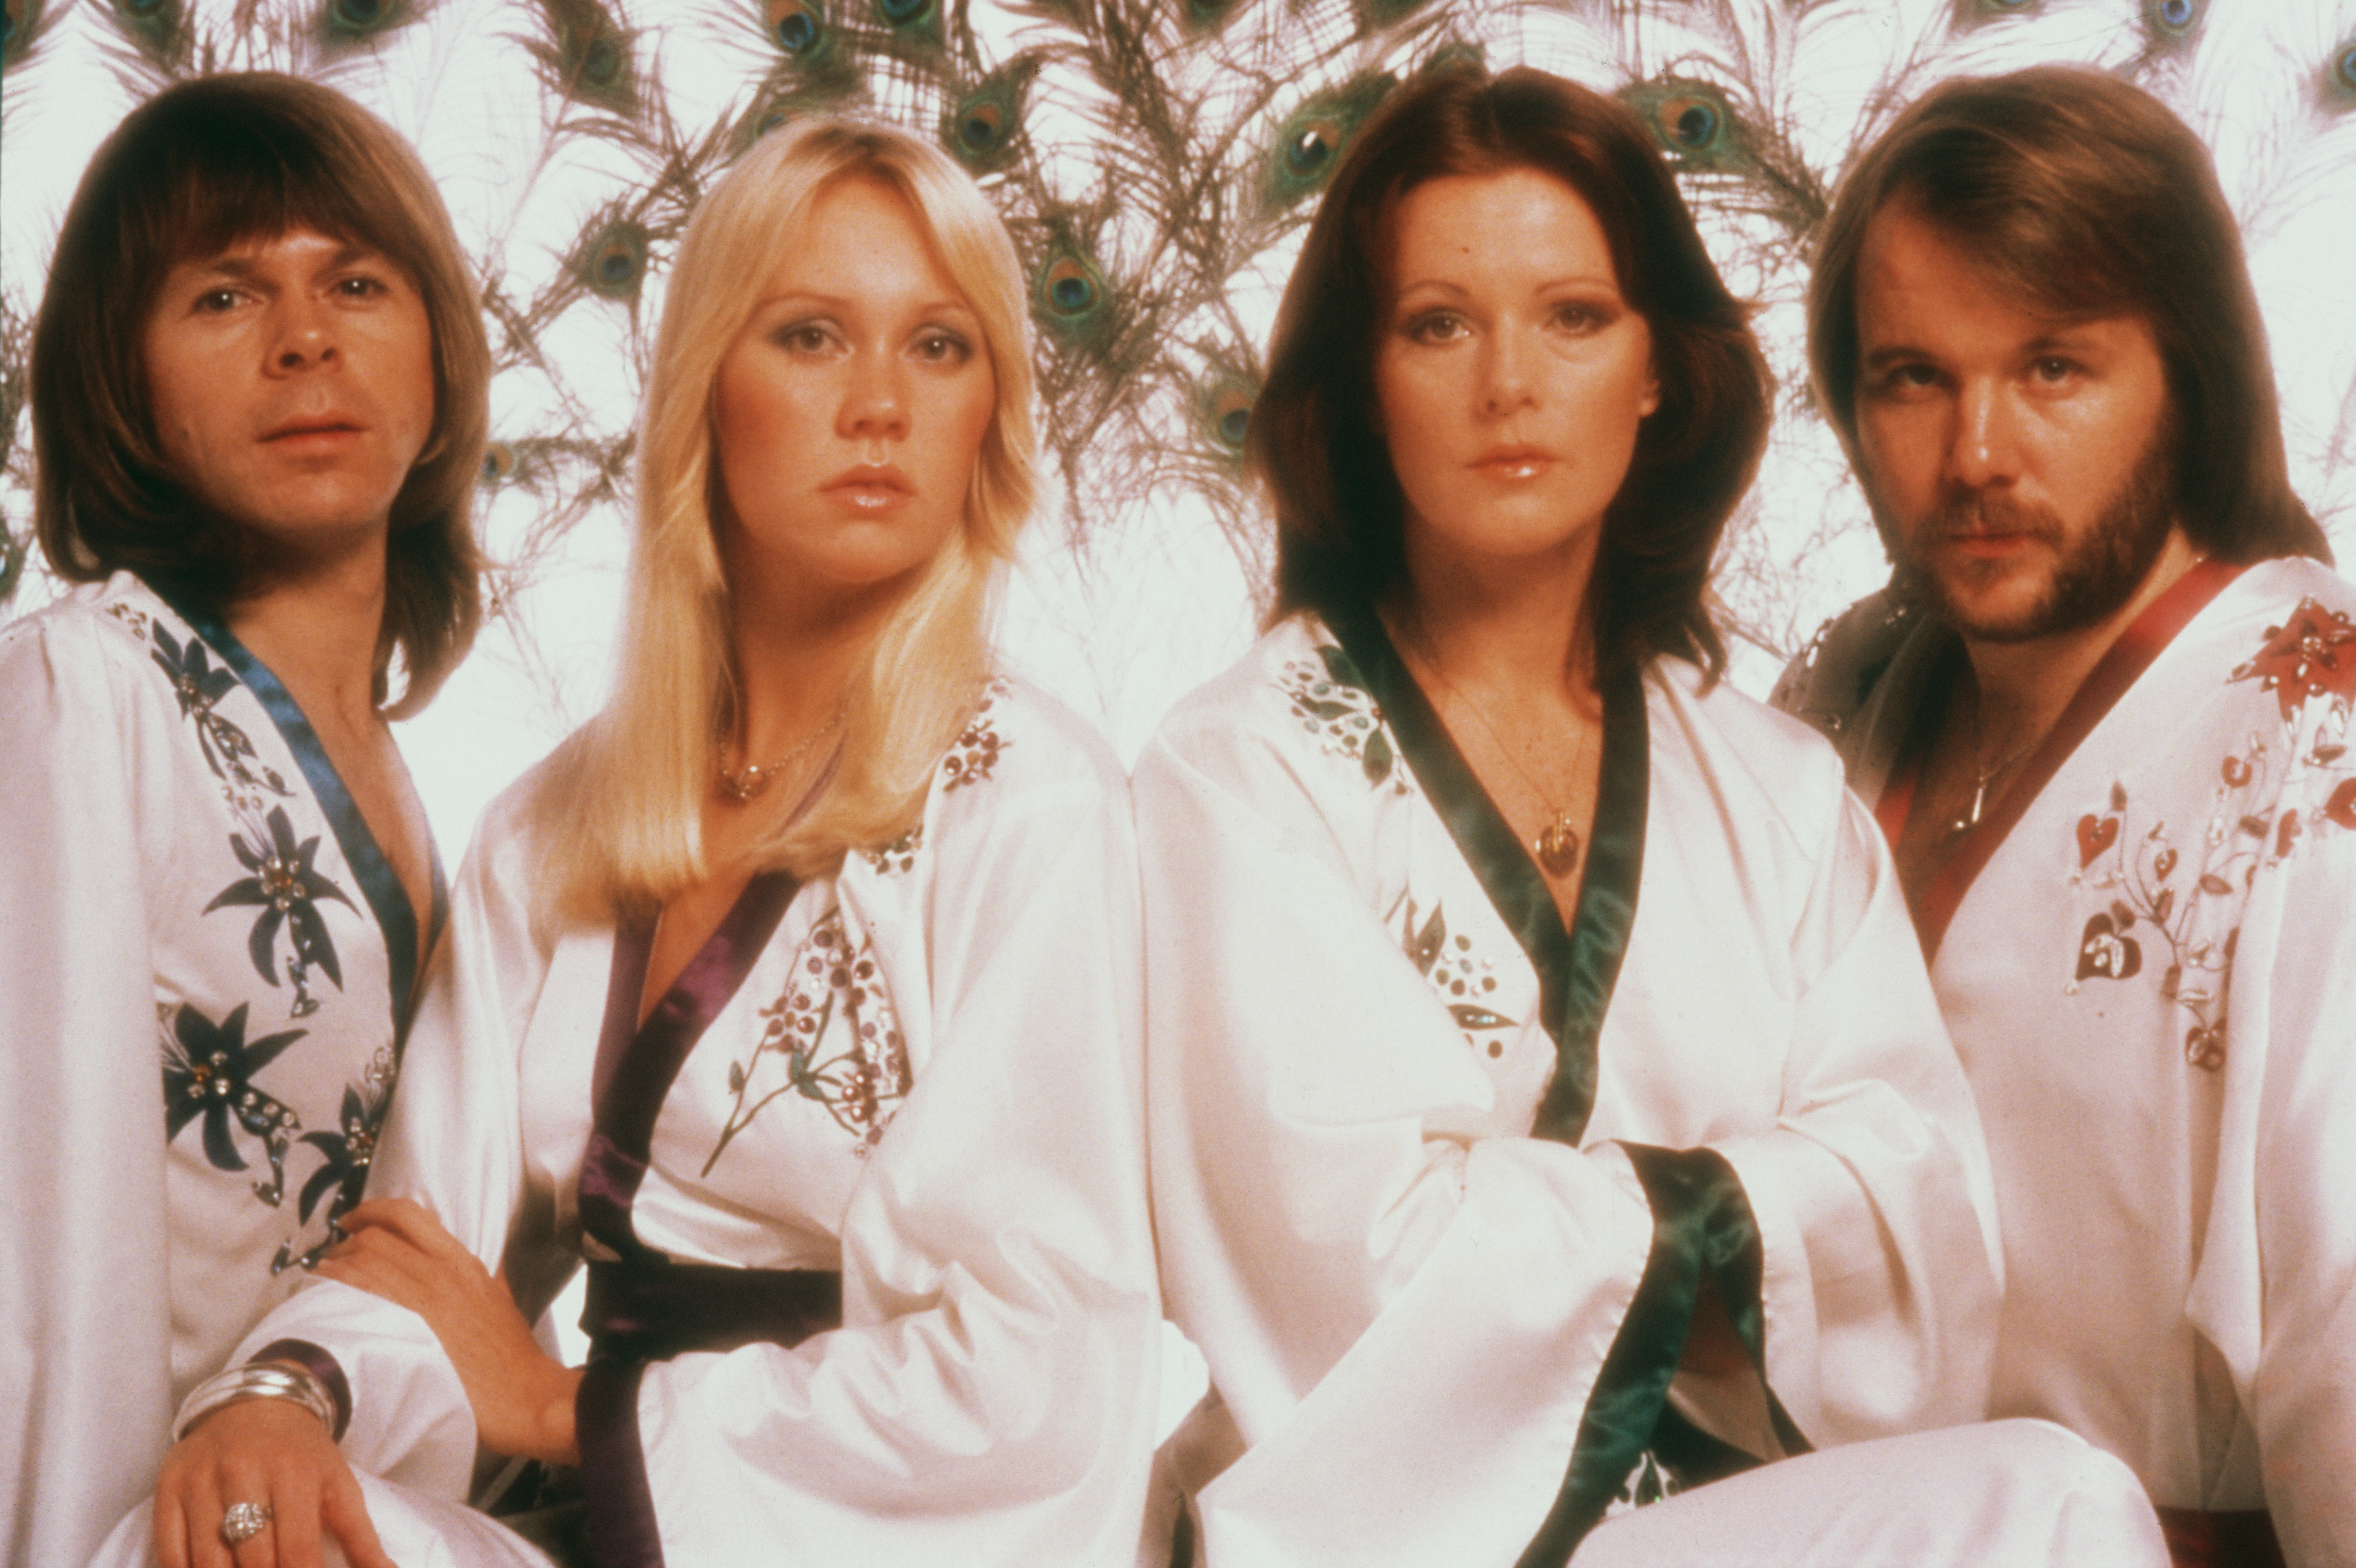 Swedish pop group Abba from left to right: Bjorn Ulvaeus, Agnetha Faltskog, Frida Lyngstad and Benny Andersson in 1976.